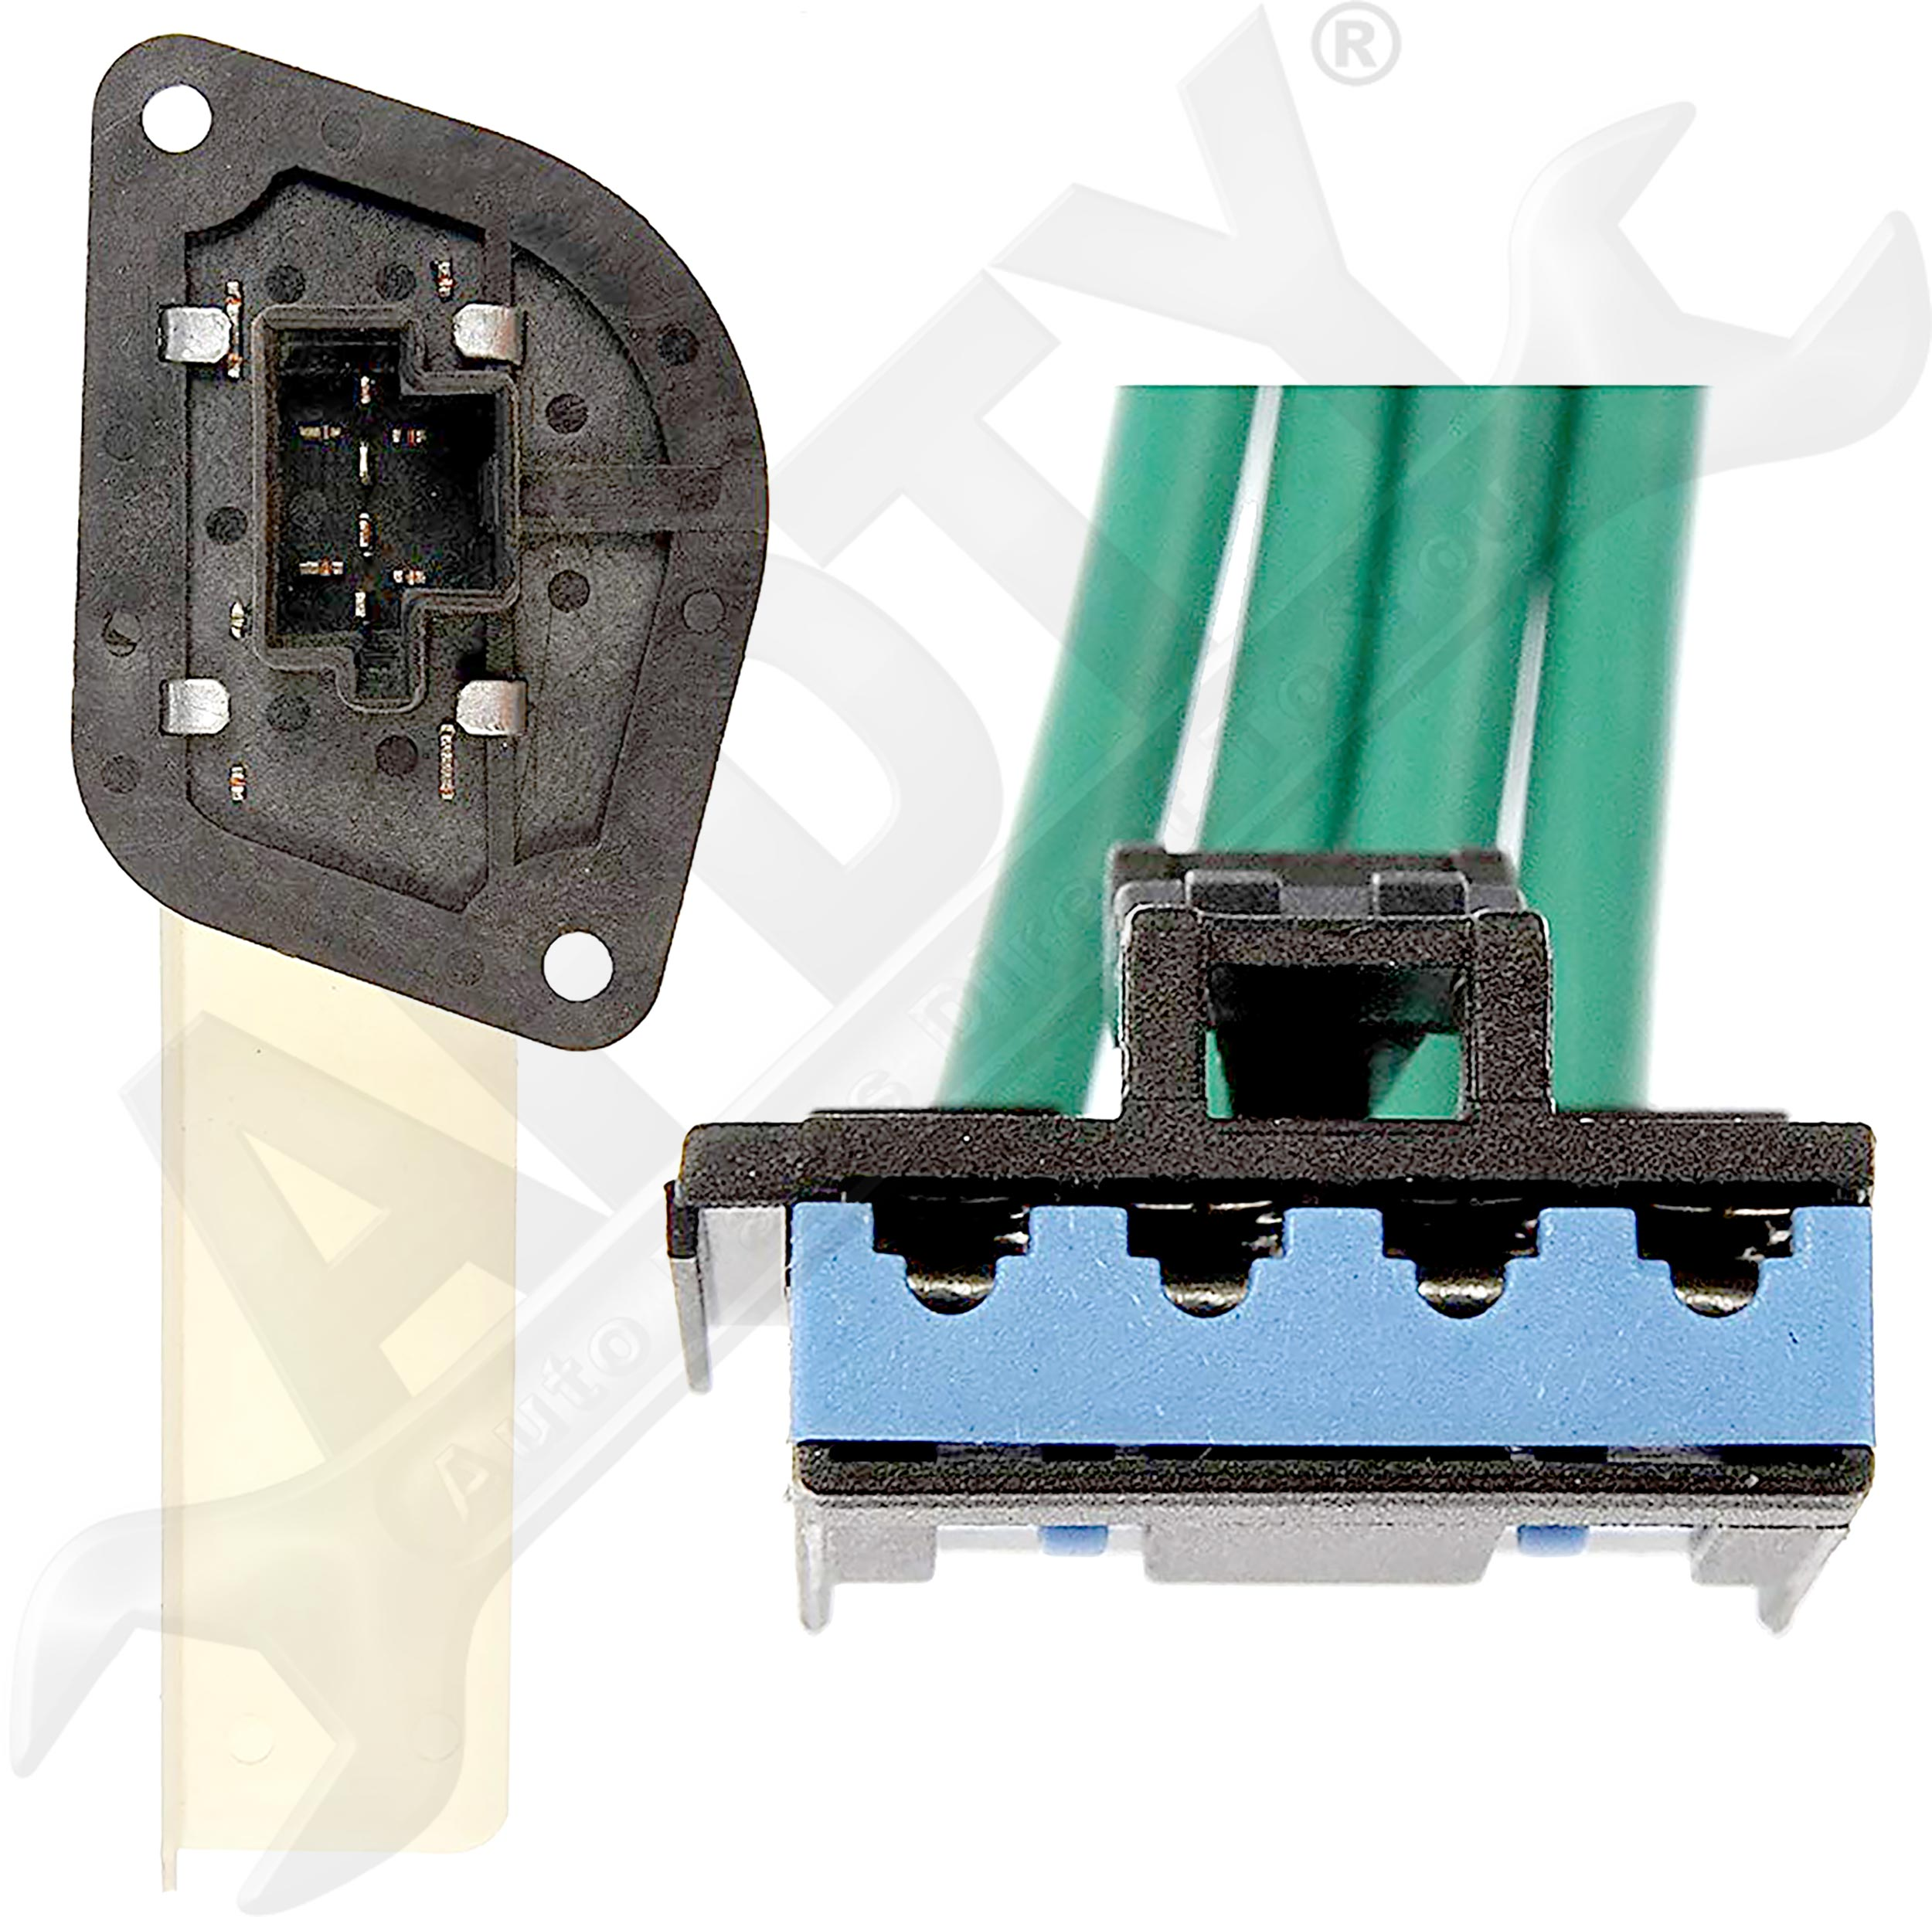 Jeep wiring pigtail free engine image for user